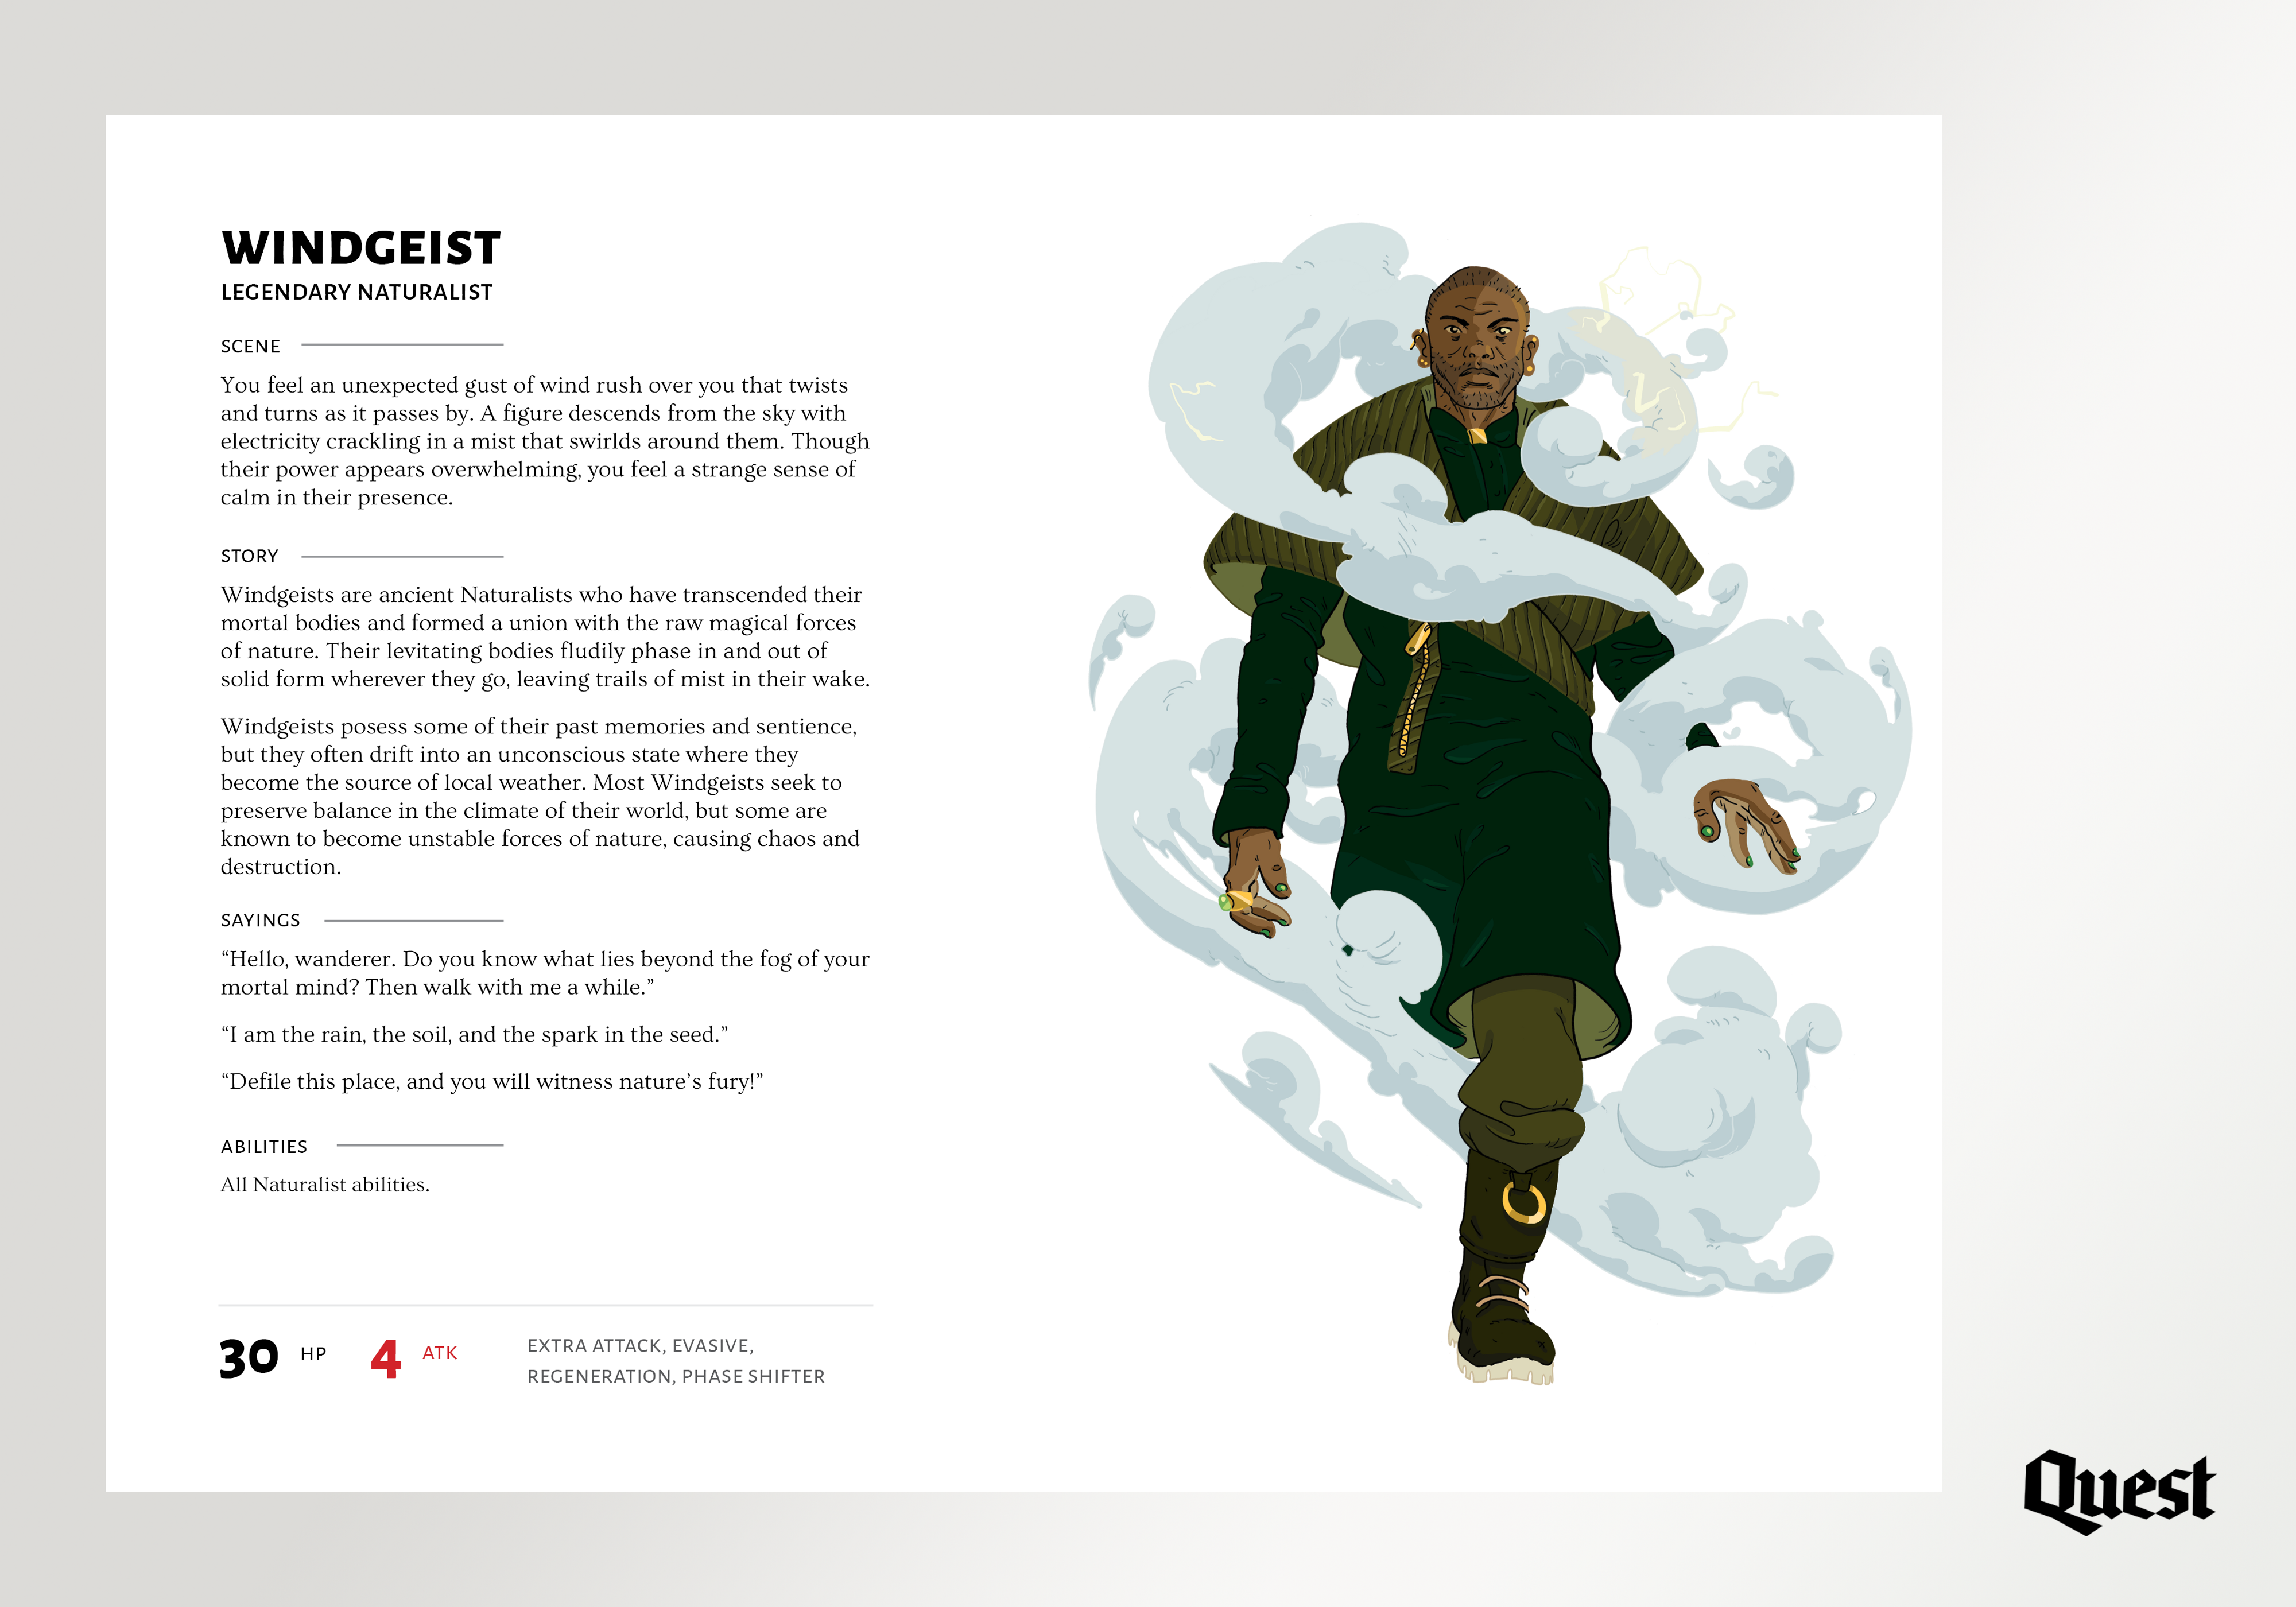 A two-page spread for the Character Book with an image of the Windgeist and its descriptive information.